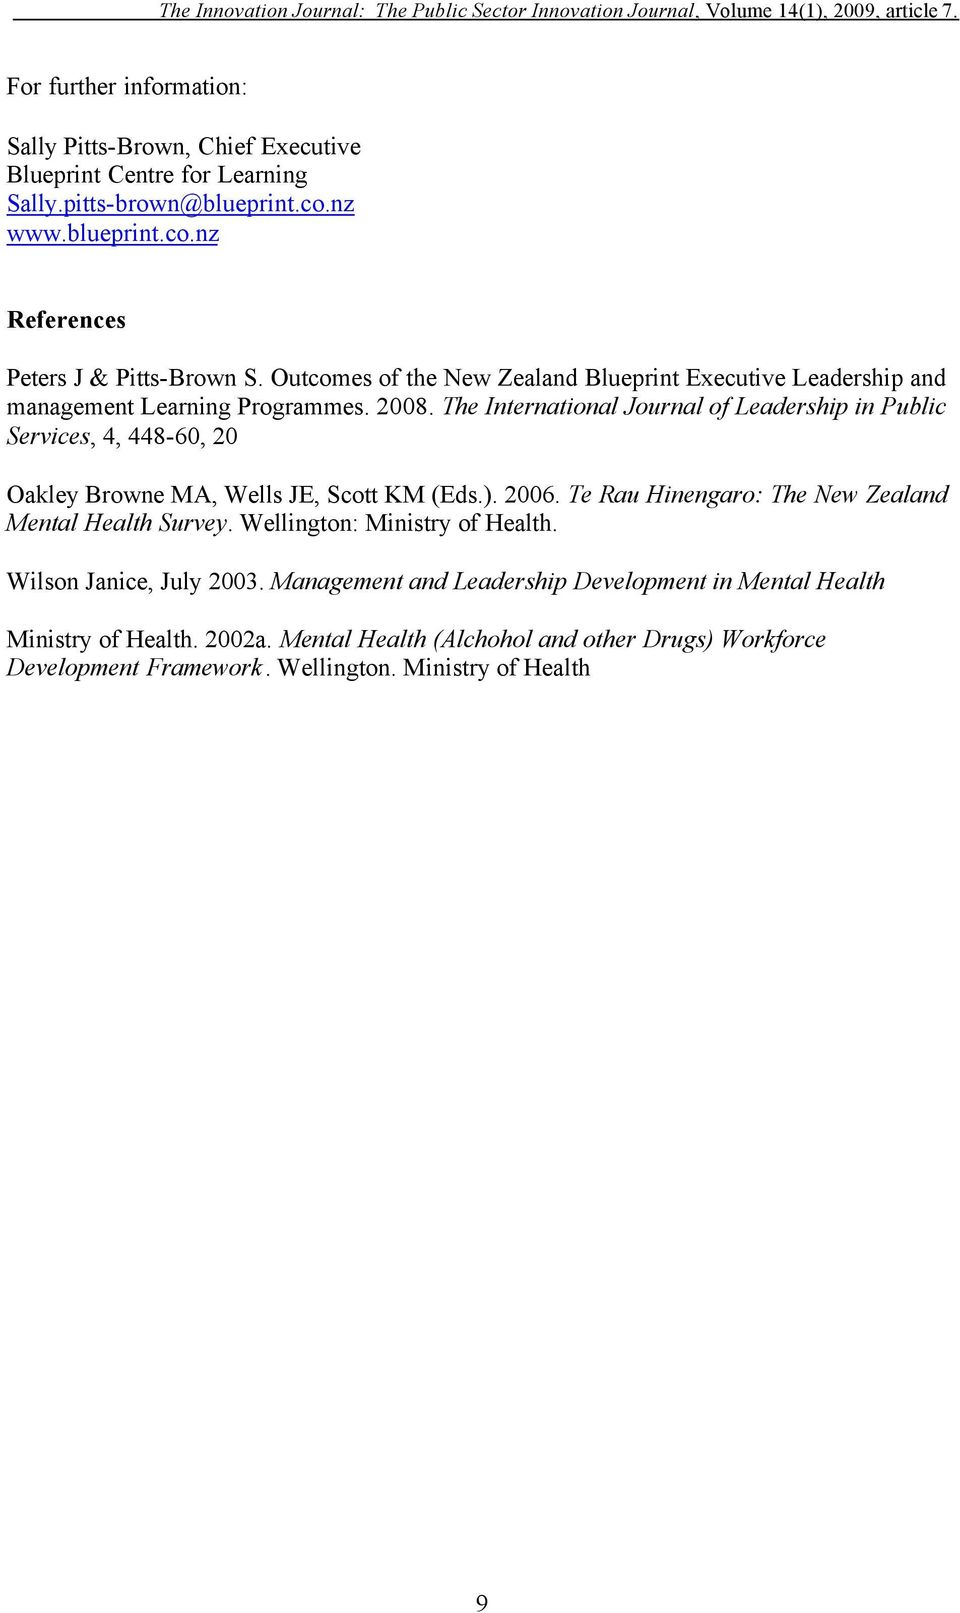 The International Journal of Leadership in Public Services, 4, 448-60, 20 Oakley Browne MA, Wells JE, Scott KM (Eds.). 2006.